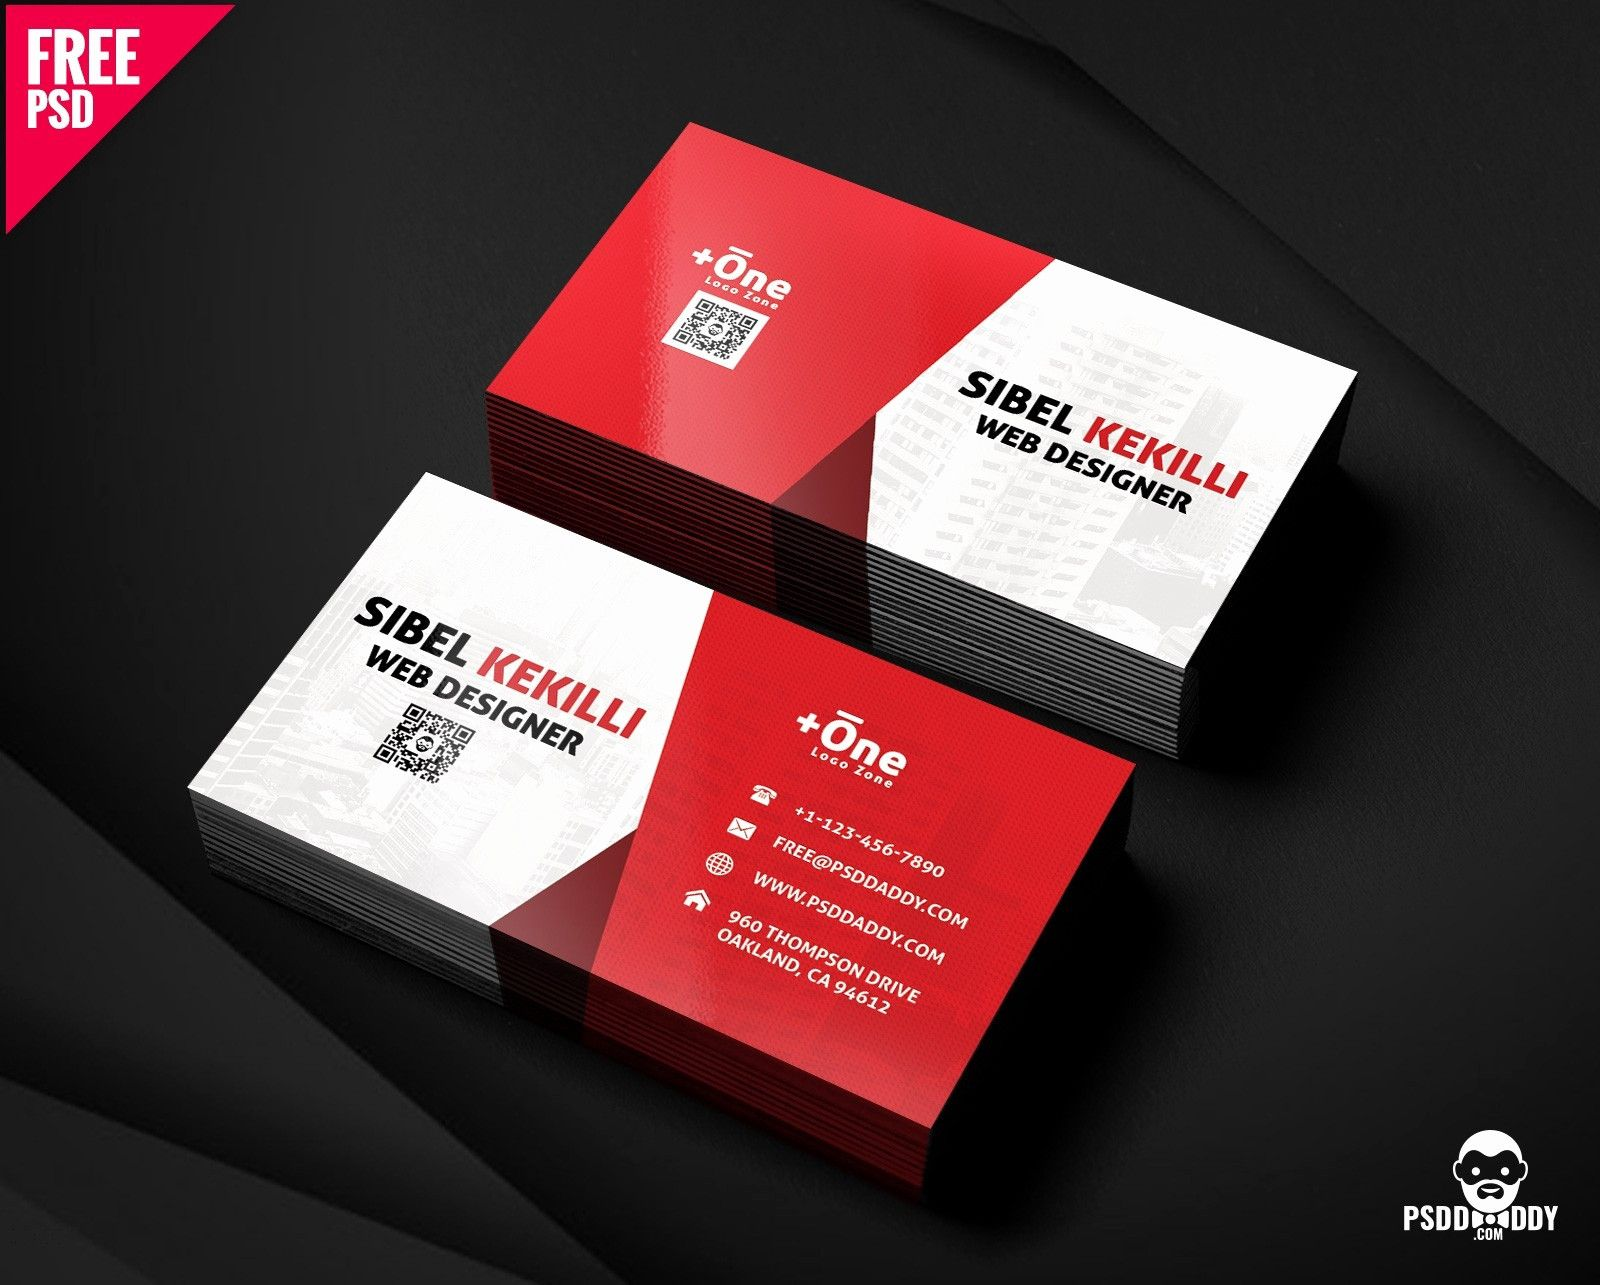 97 Jukebox Business Cards Jnutella In Christian Business Cards Templates Free Business Card Template Photoshop Transparent Business Cards Business Card Psd